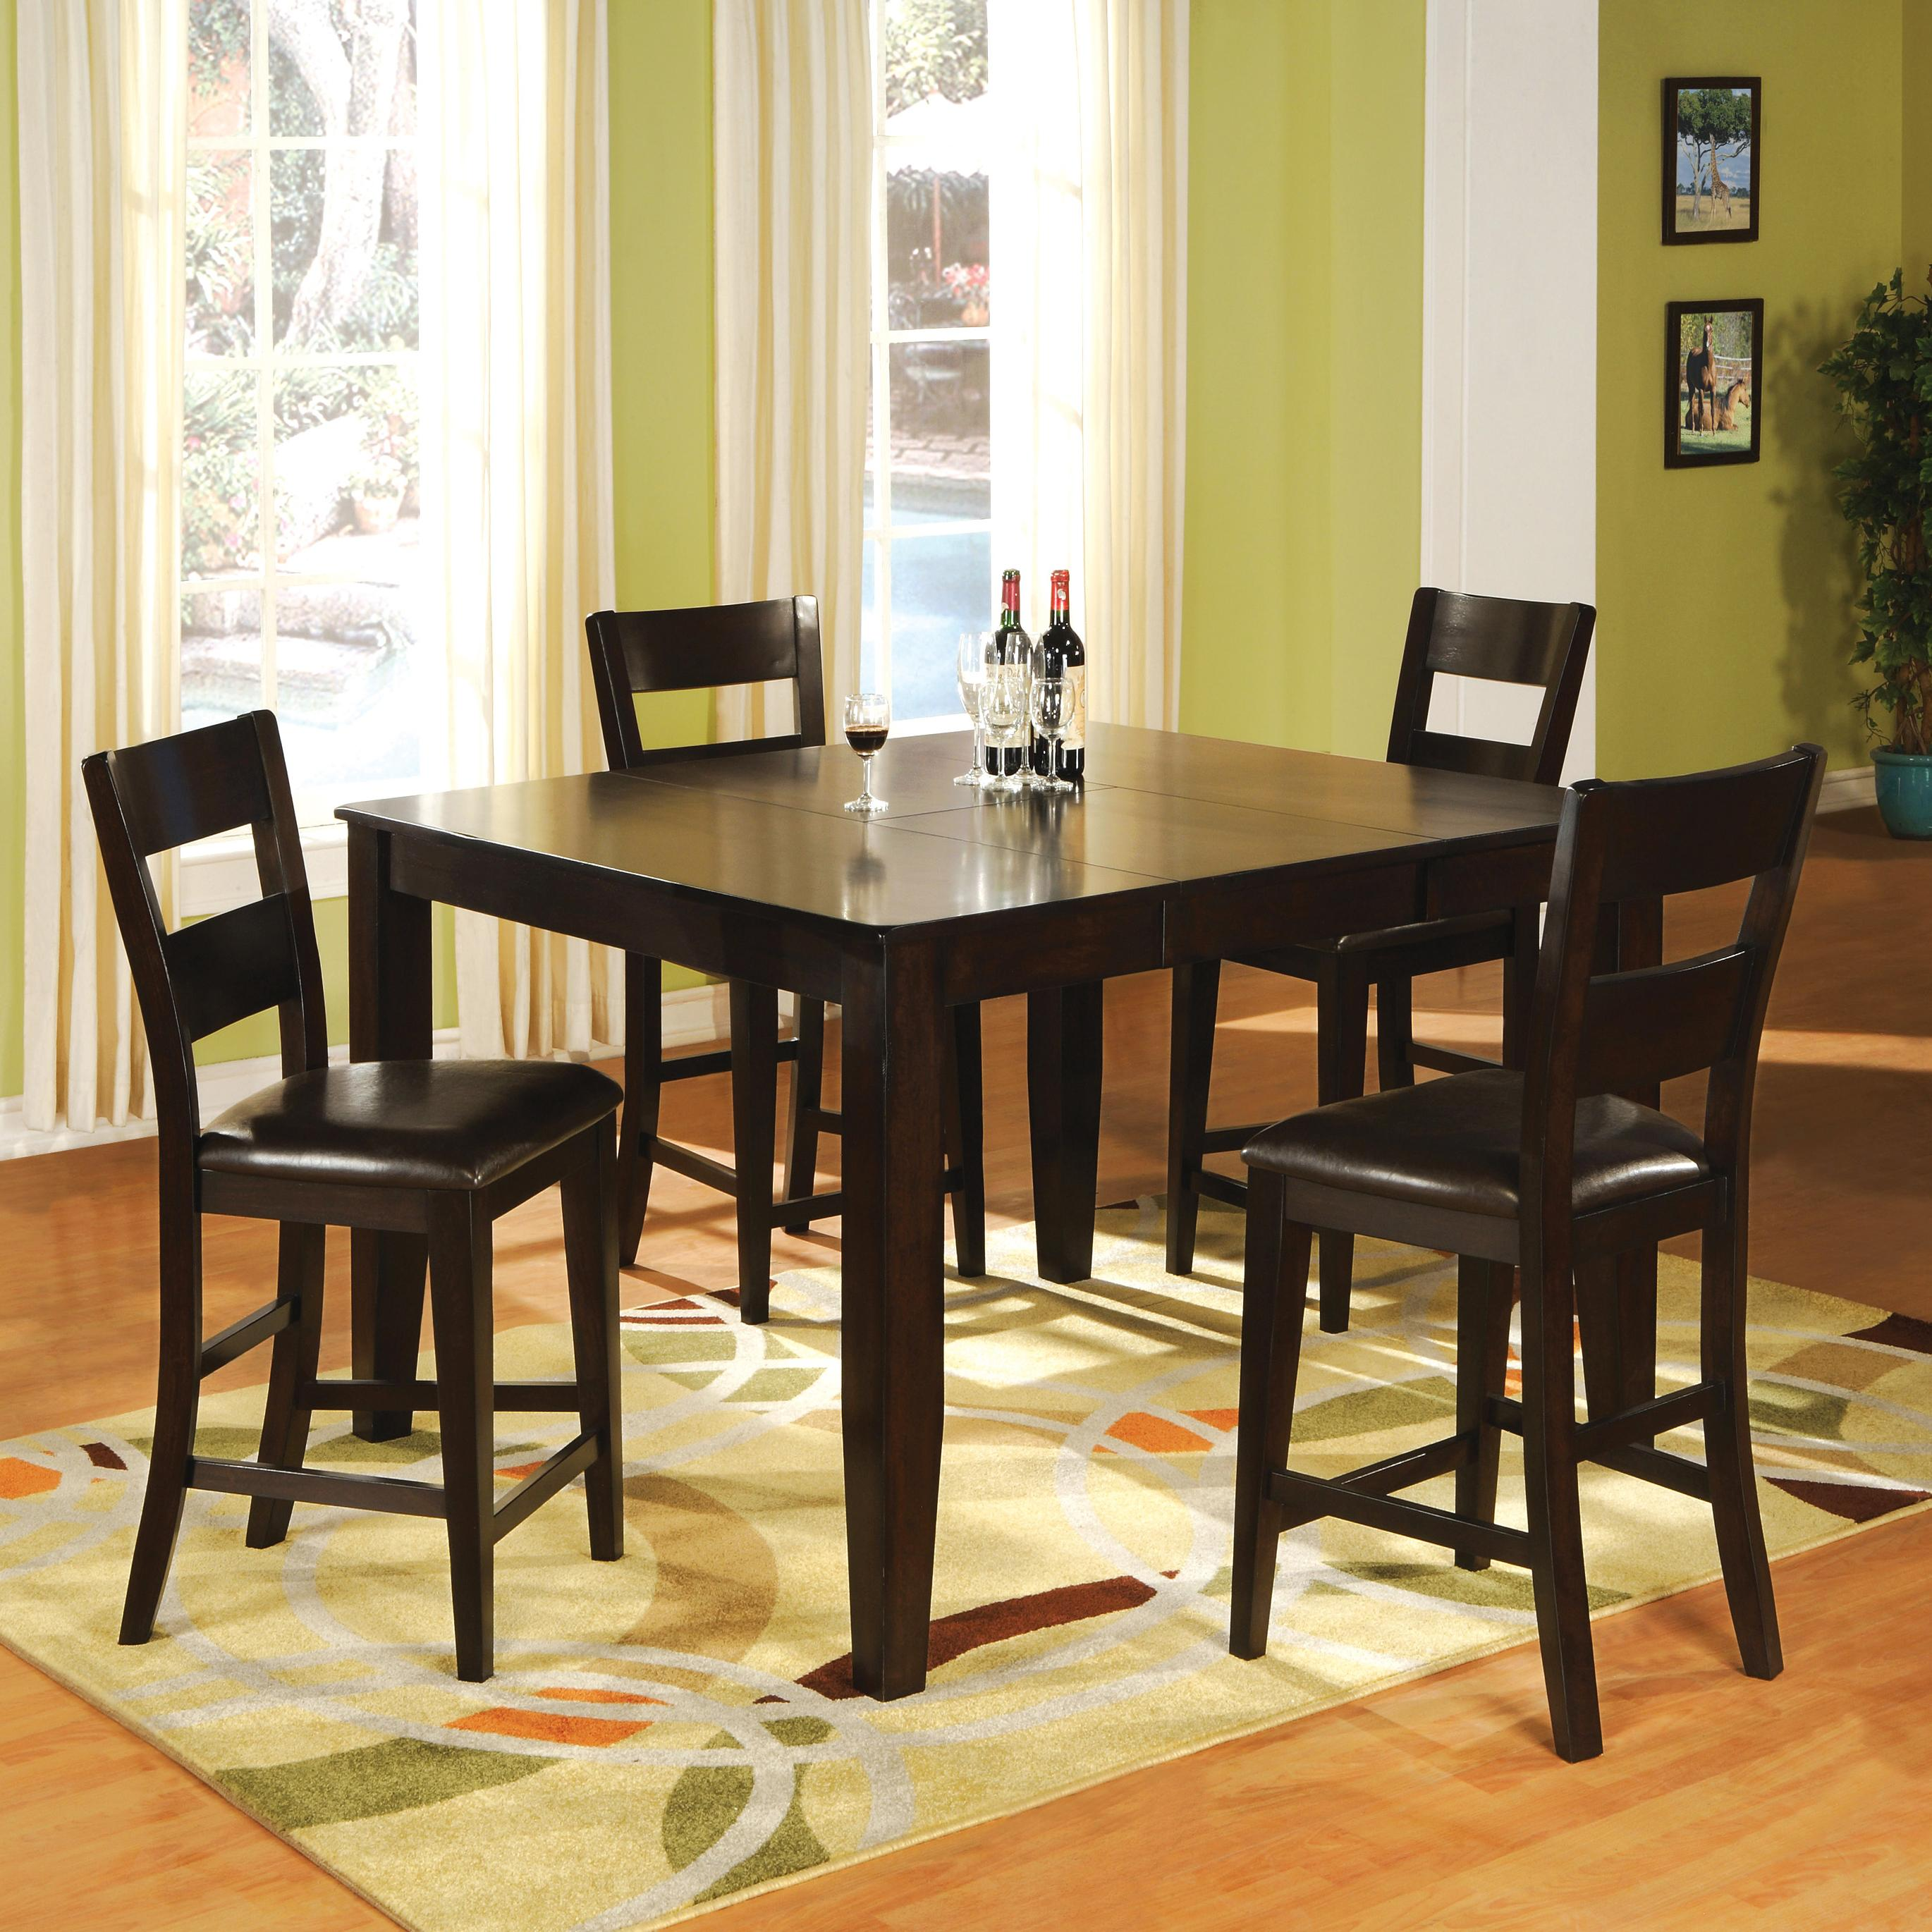 5 Piece Pub Table and Chair Dining Set